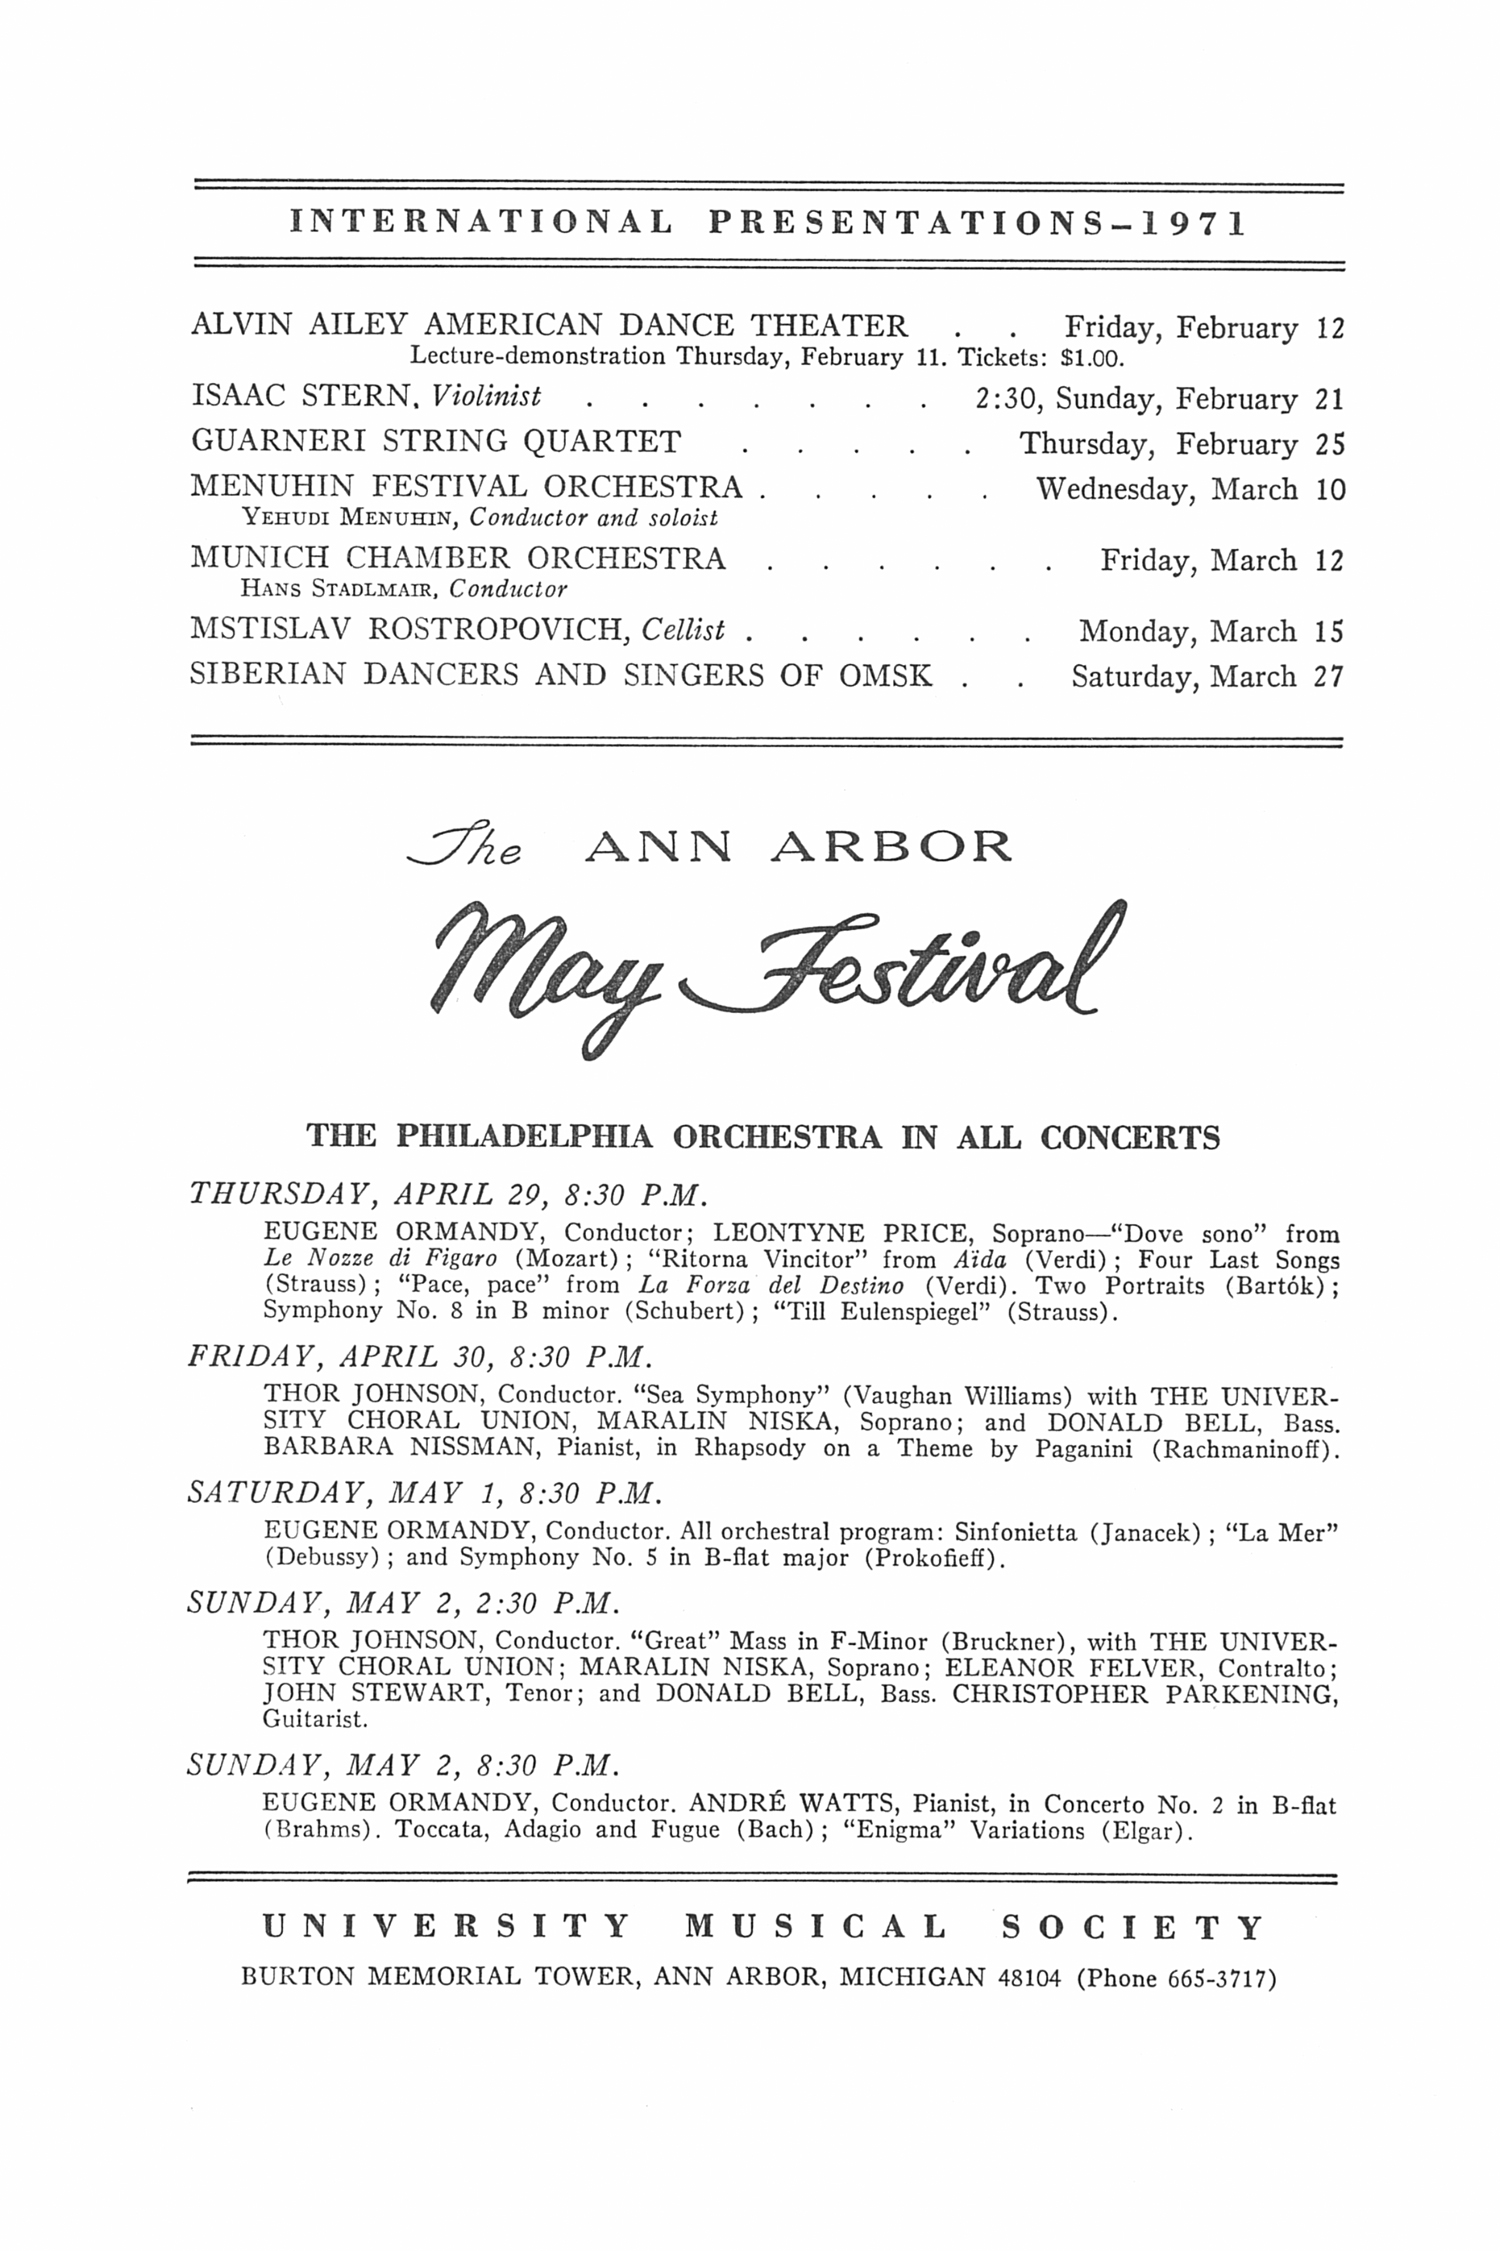 UMS Concert Program, February 2, 1971: Festival Winds --  image